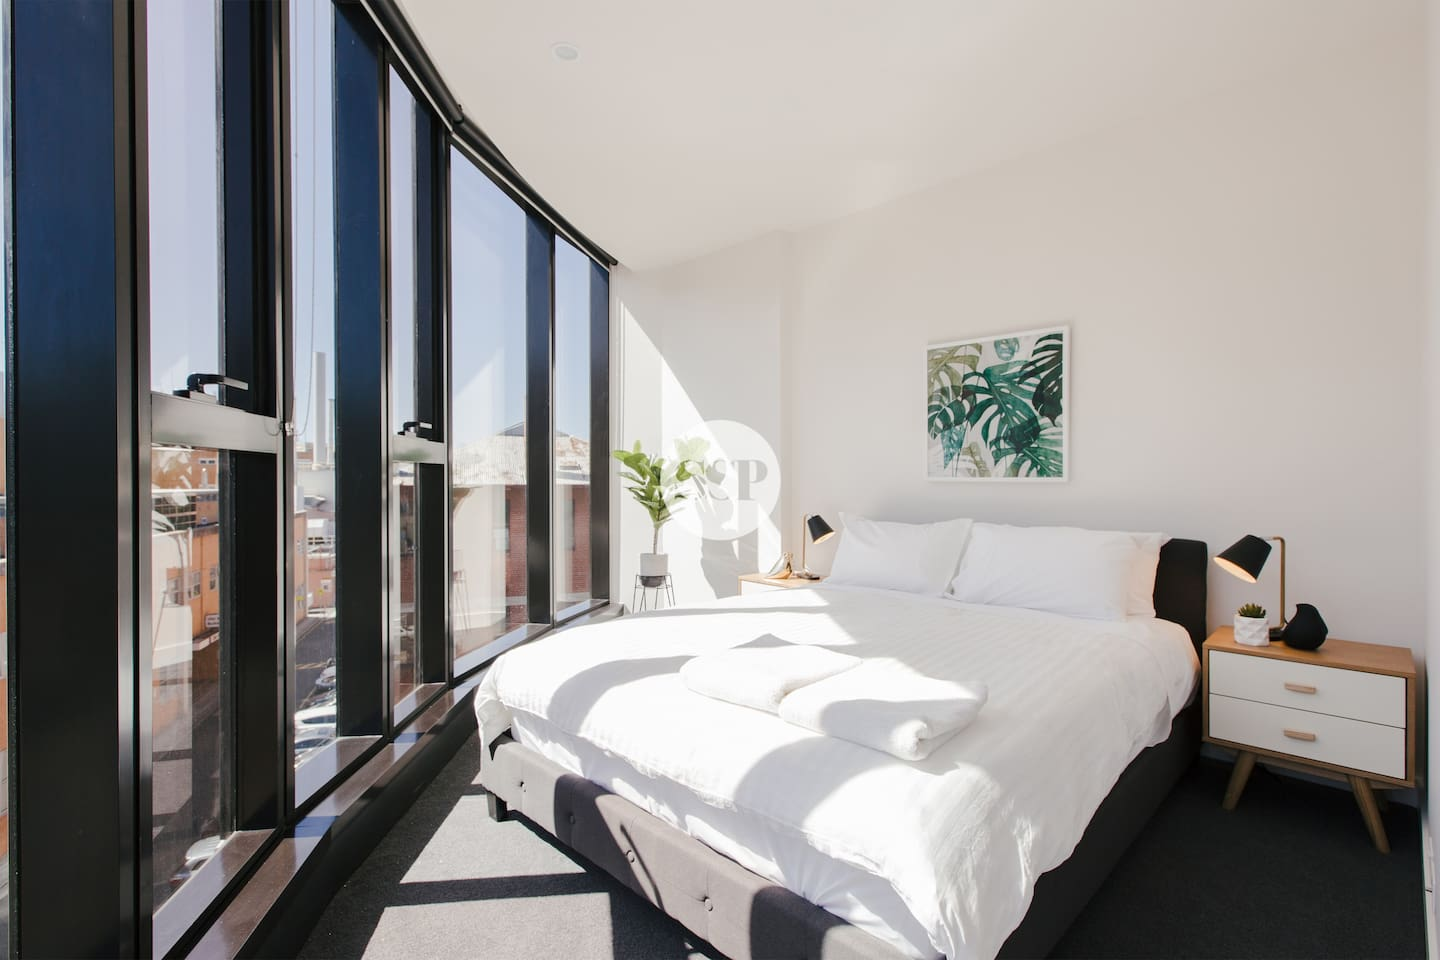 Wake up to a panoramic view in this queen size bed that is lined with hotel quality linen - cleaned and prepared before you arrive.